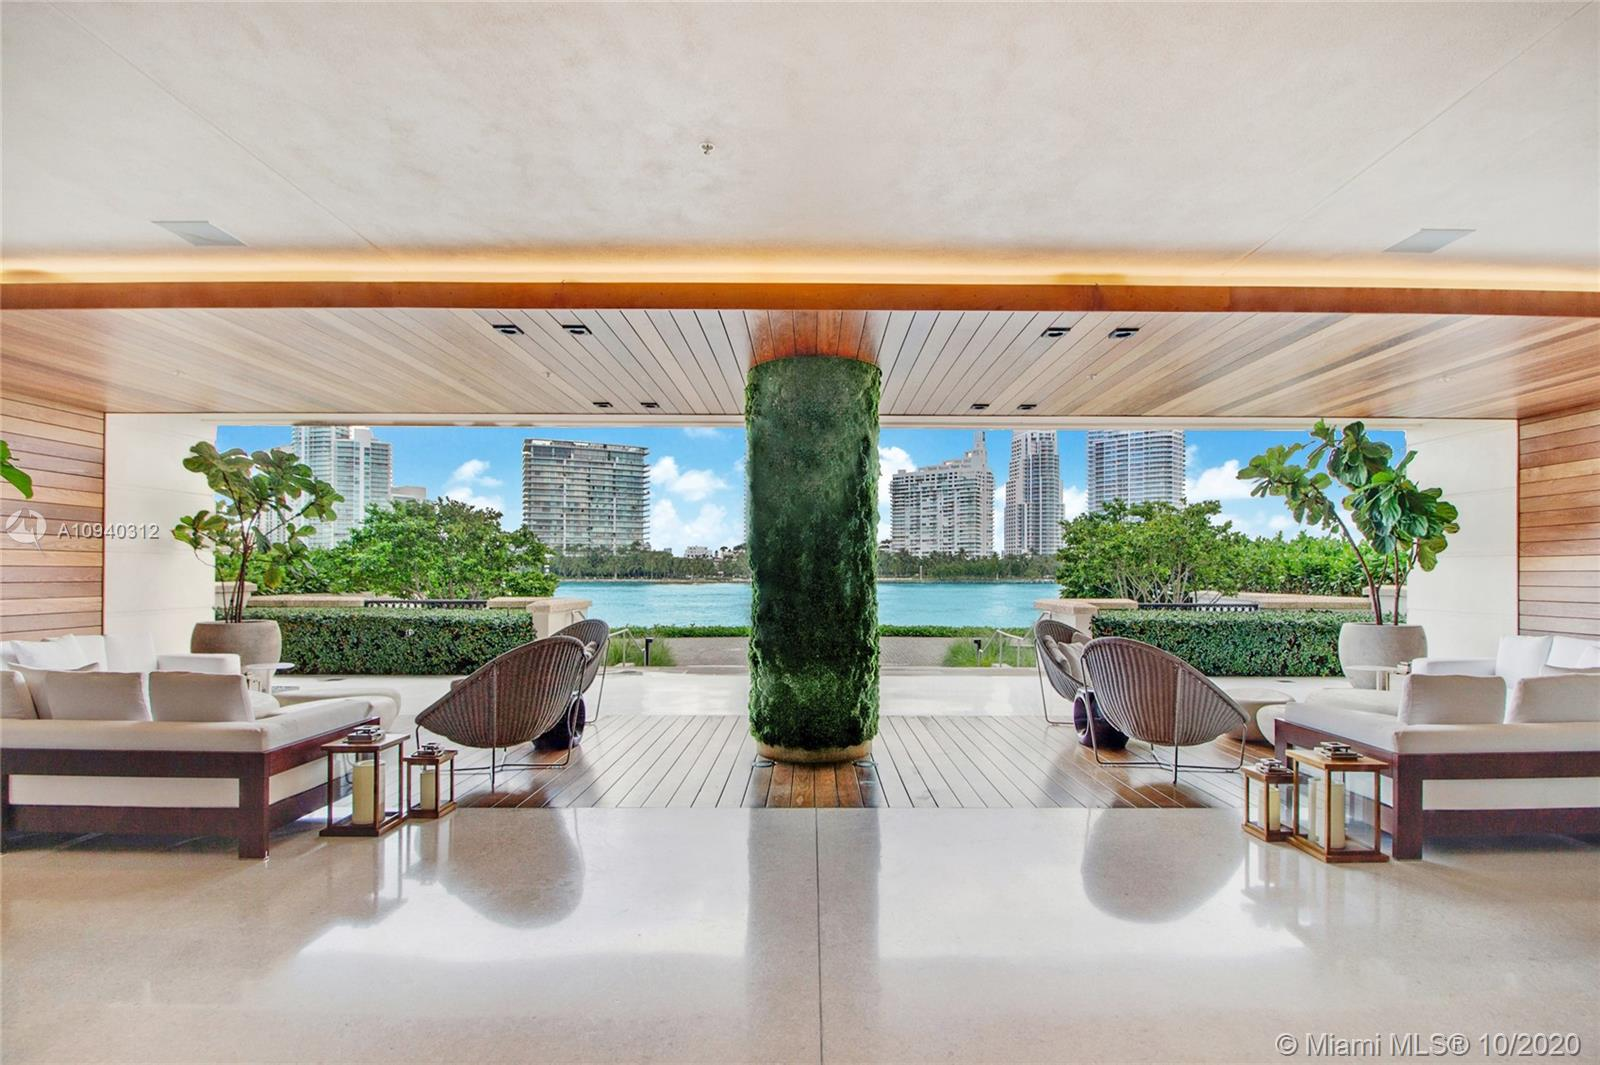 7085 Fisher Island Dr #7085 Property Photo